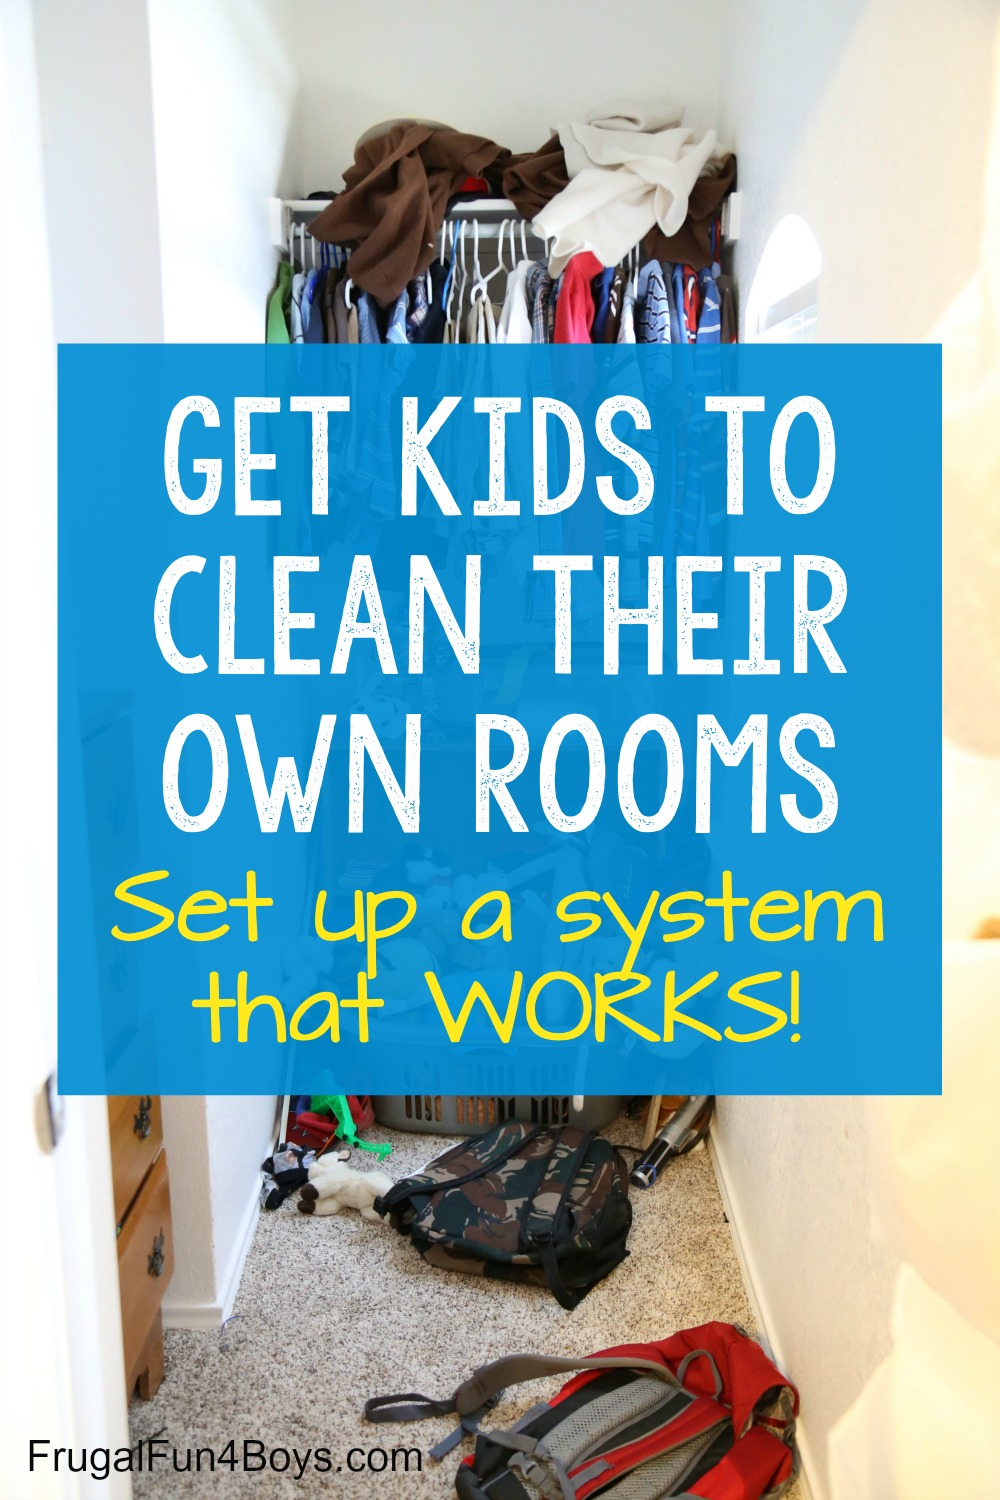 How to Get Kids to Clean Their Own Rooms